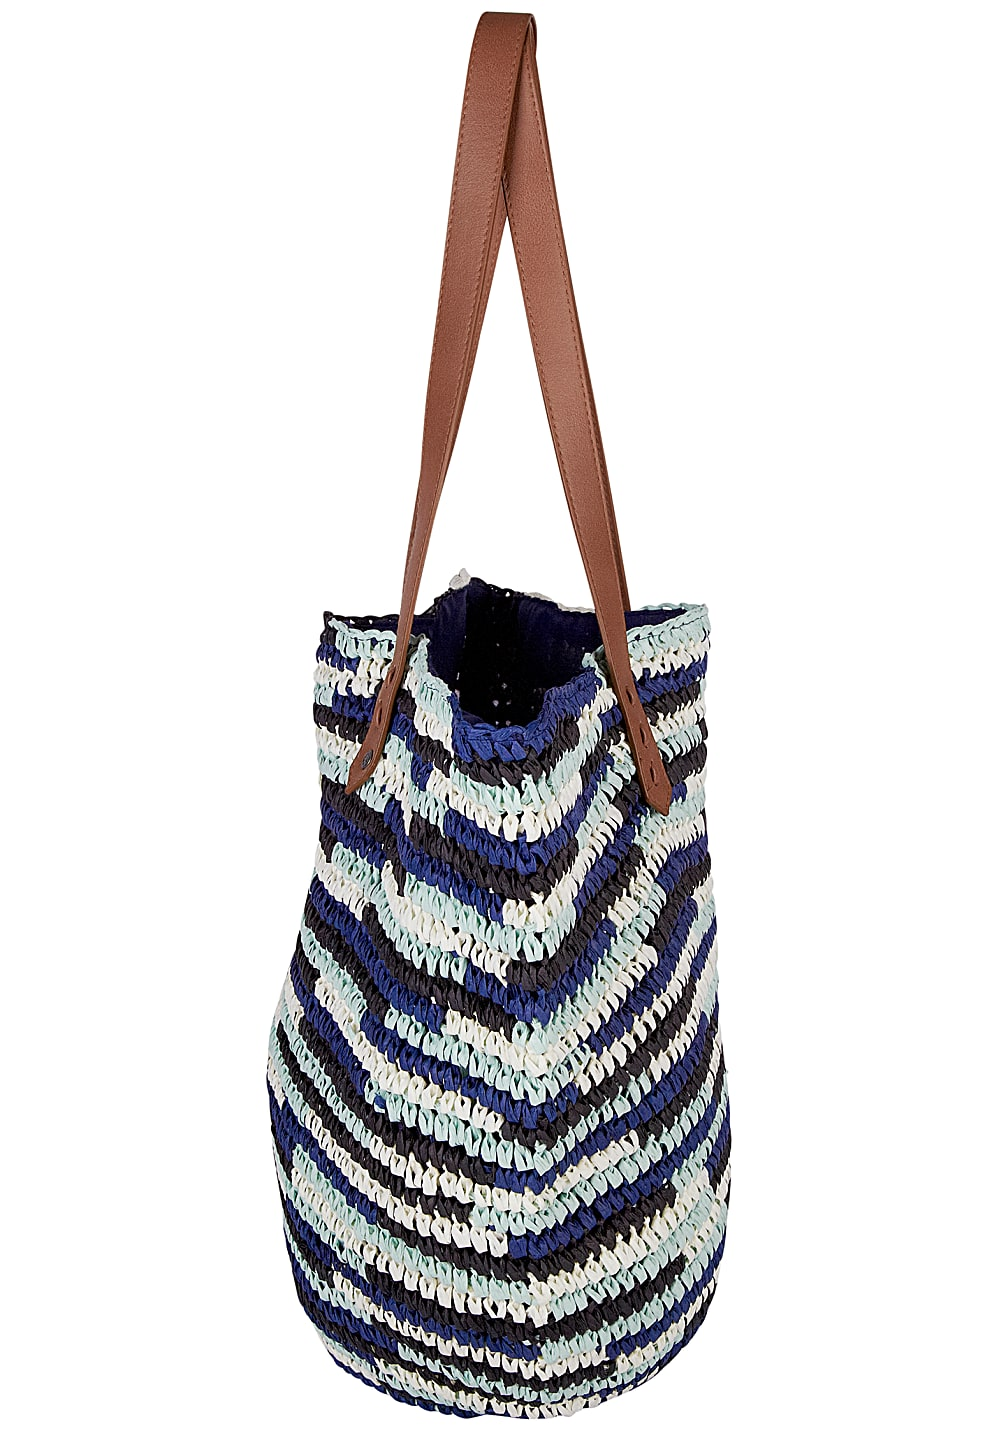 Chiemsee Straw Beach Bag - Tasche für Damen - Blau